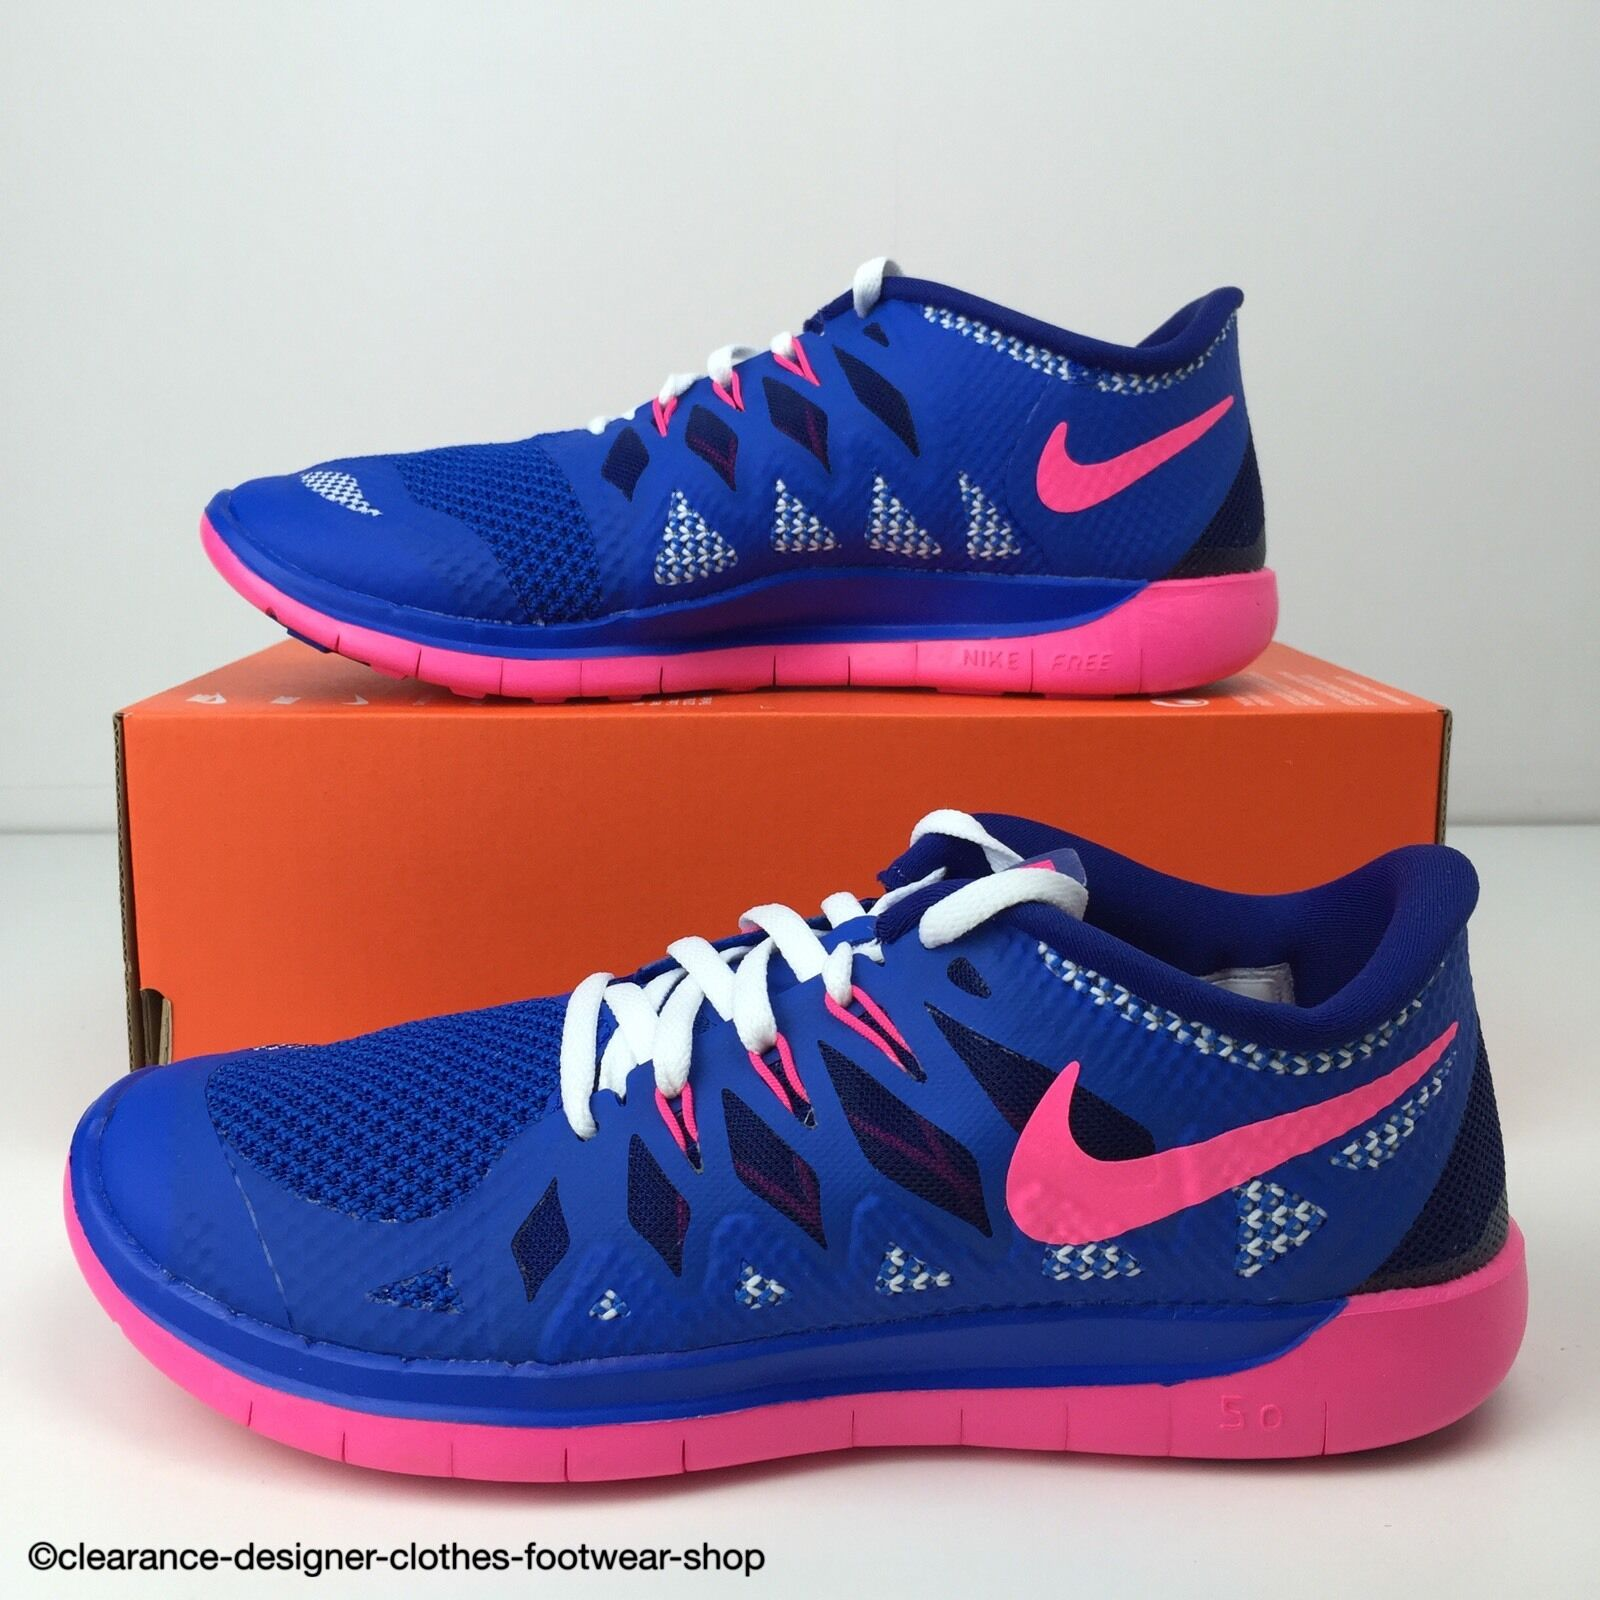 NIKE FREE 5.0 GS TRAINER GIRLS WO Hommes RUN RUNNING TRAINING SHOE5110